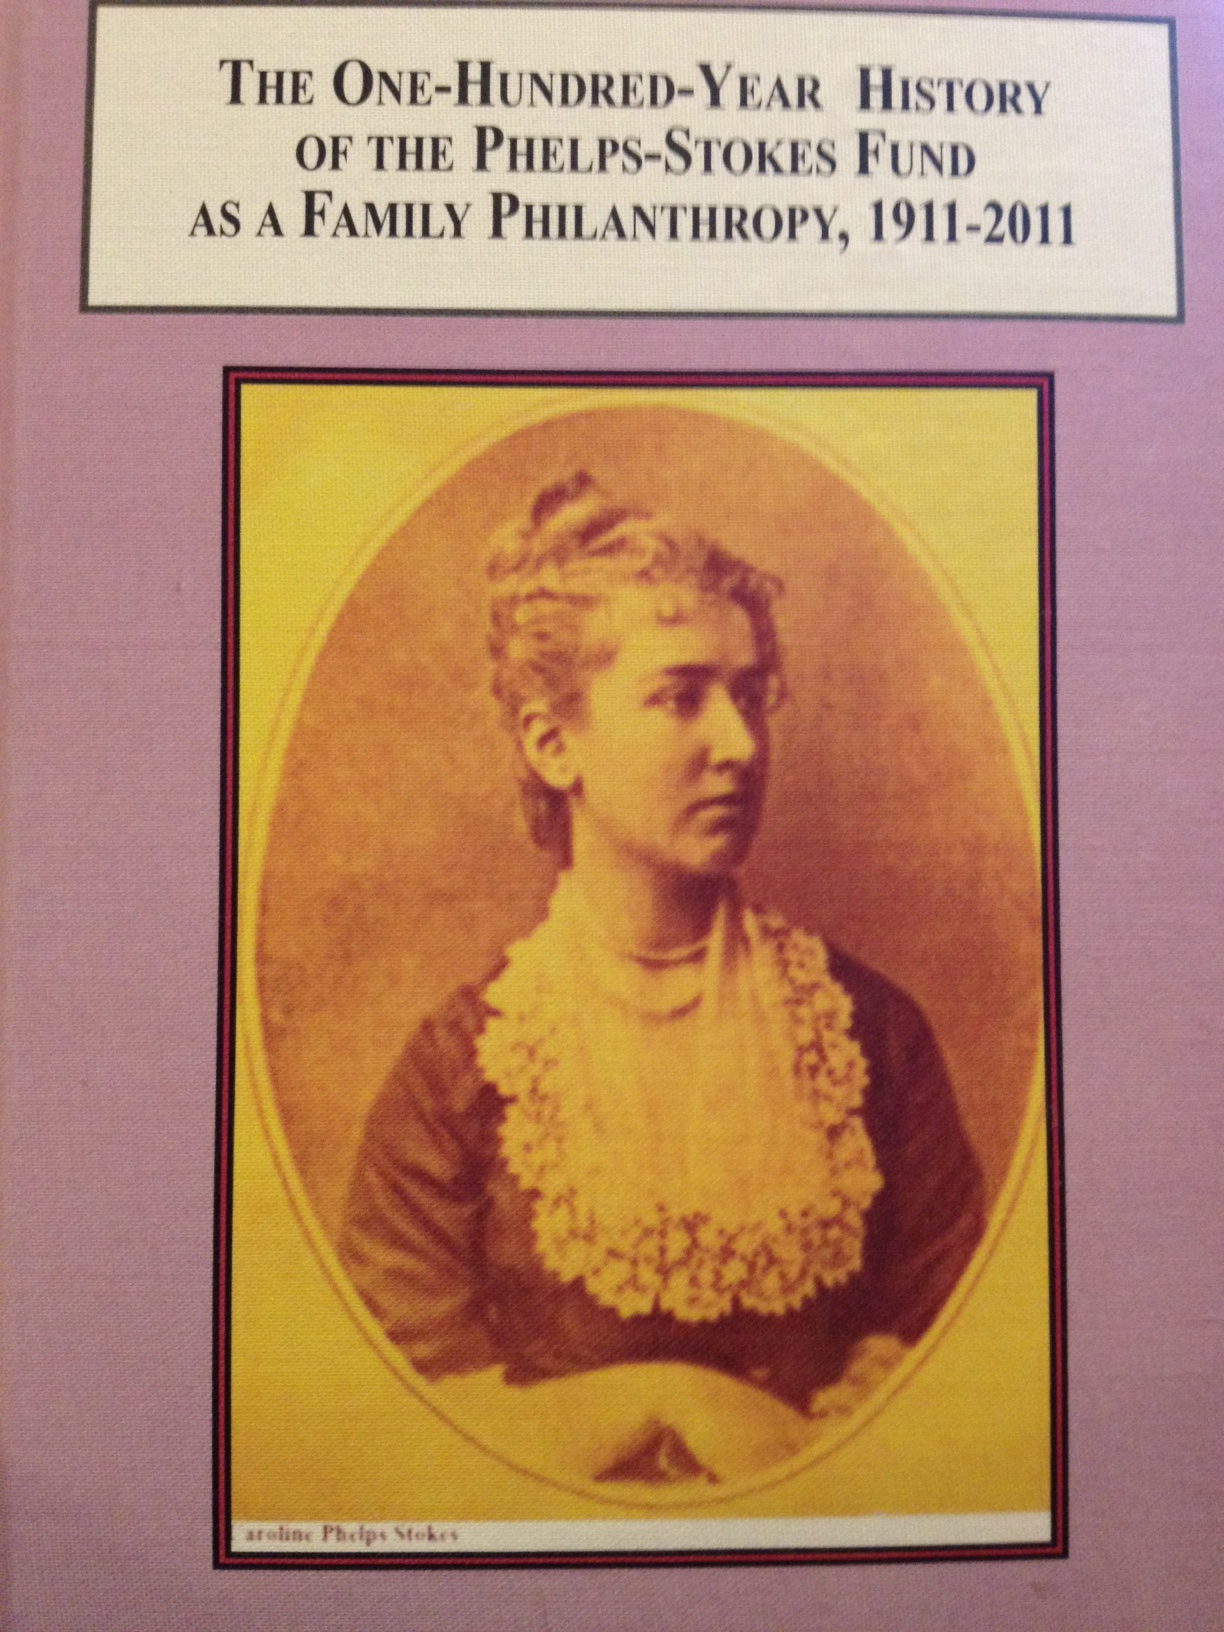 One-hundred-Year History of the Phelps-Stokes Fund As a Family Philanthropy: New Book